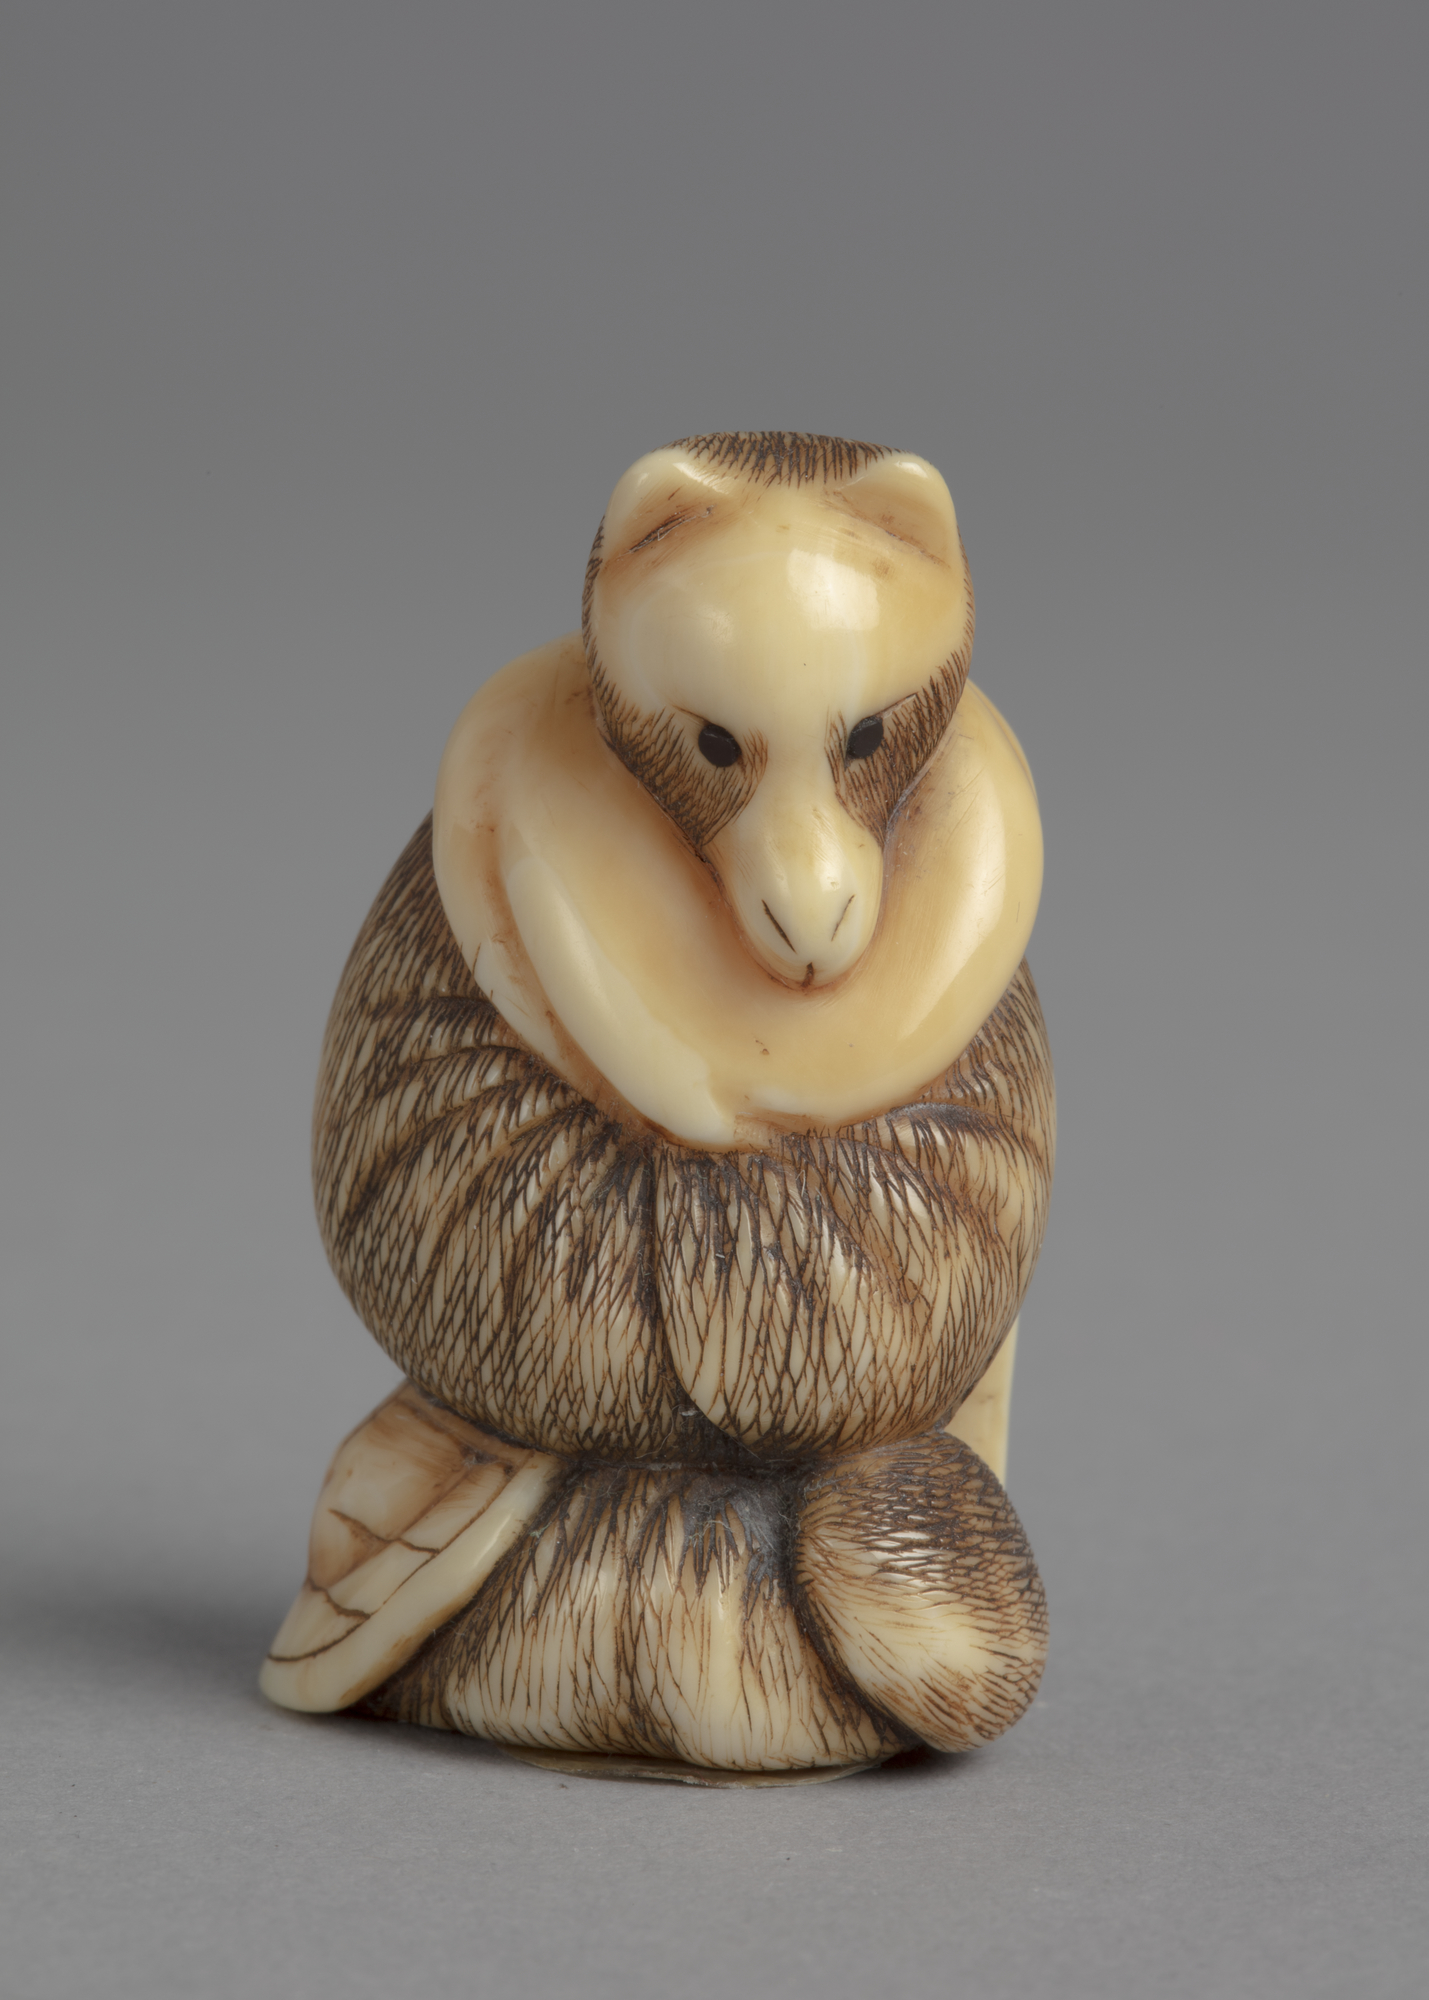 A Japanese ivory netsuke of a standing tanuki, a badger-like racoon native to Japan. It wears thick winter robes.